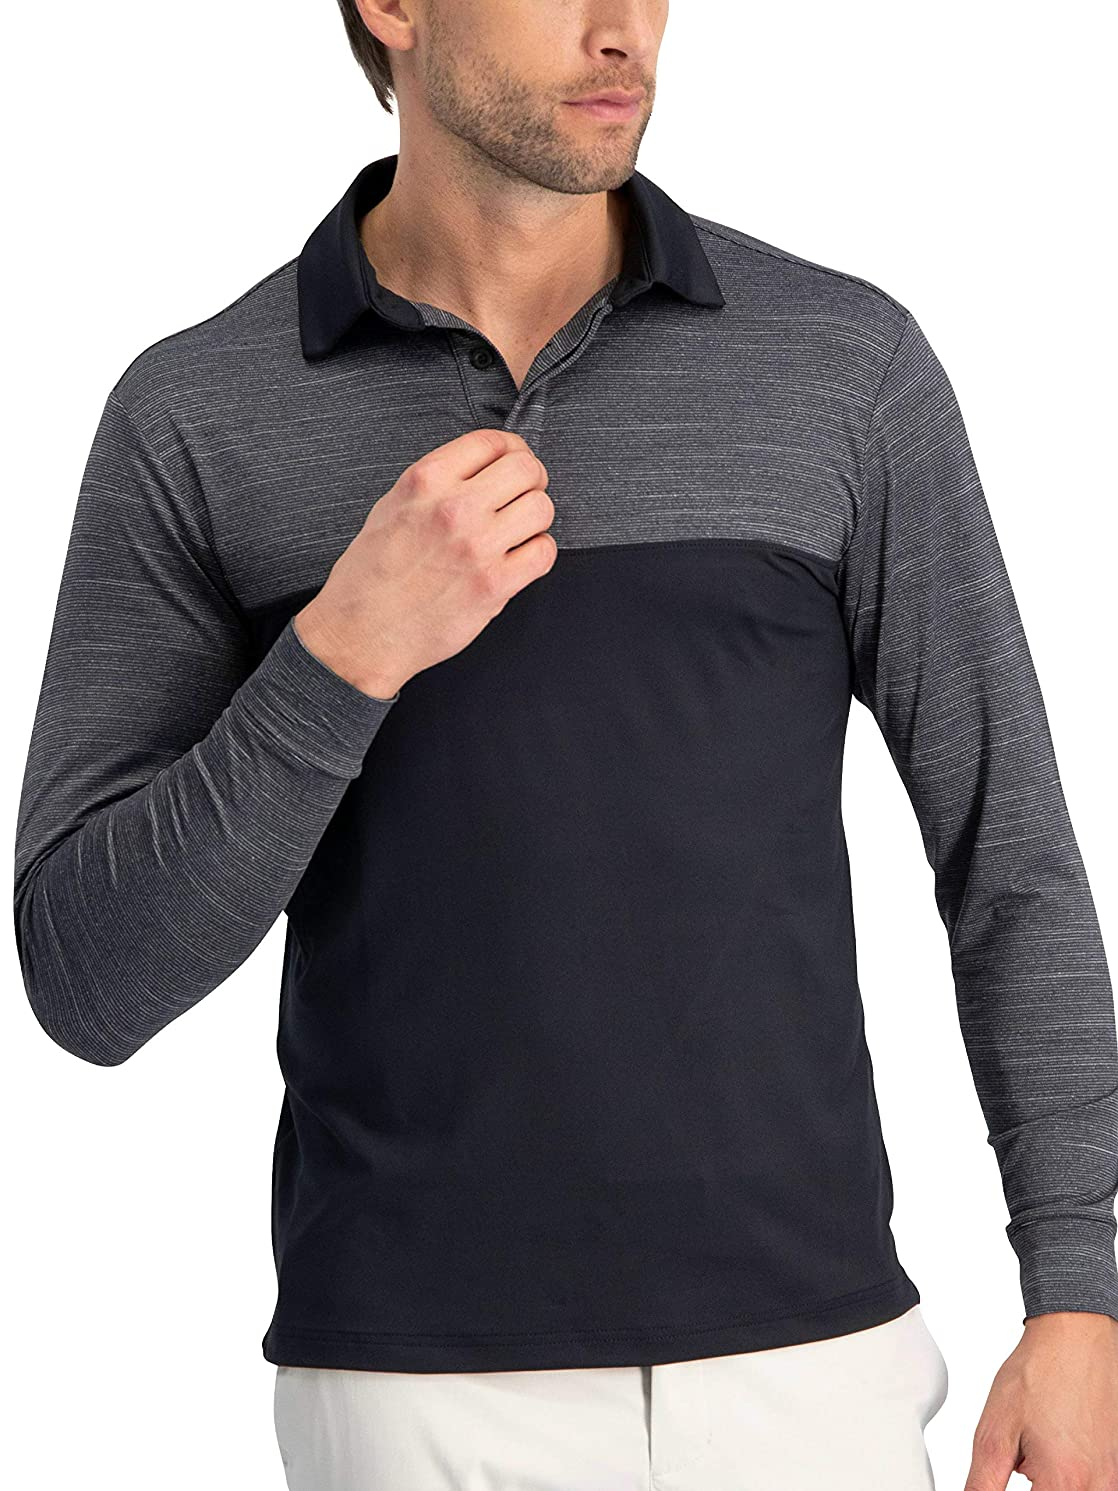 Three Sixty Six Long Sleeve Polo Shirts for Men - Men's Long Sleeve Golf Polos - Dry Fit Fabric